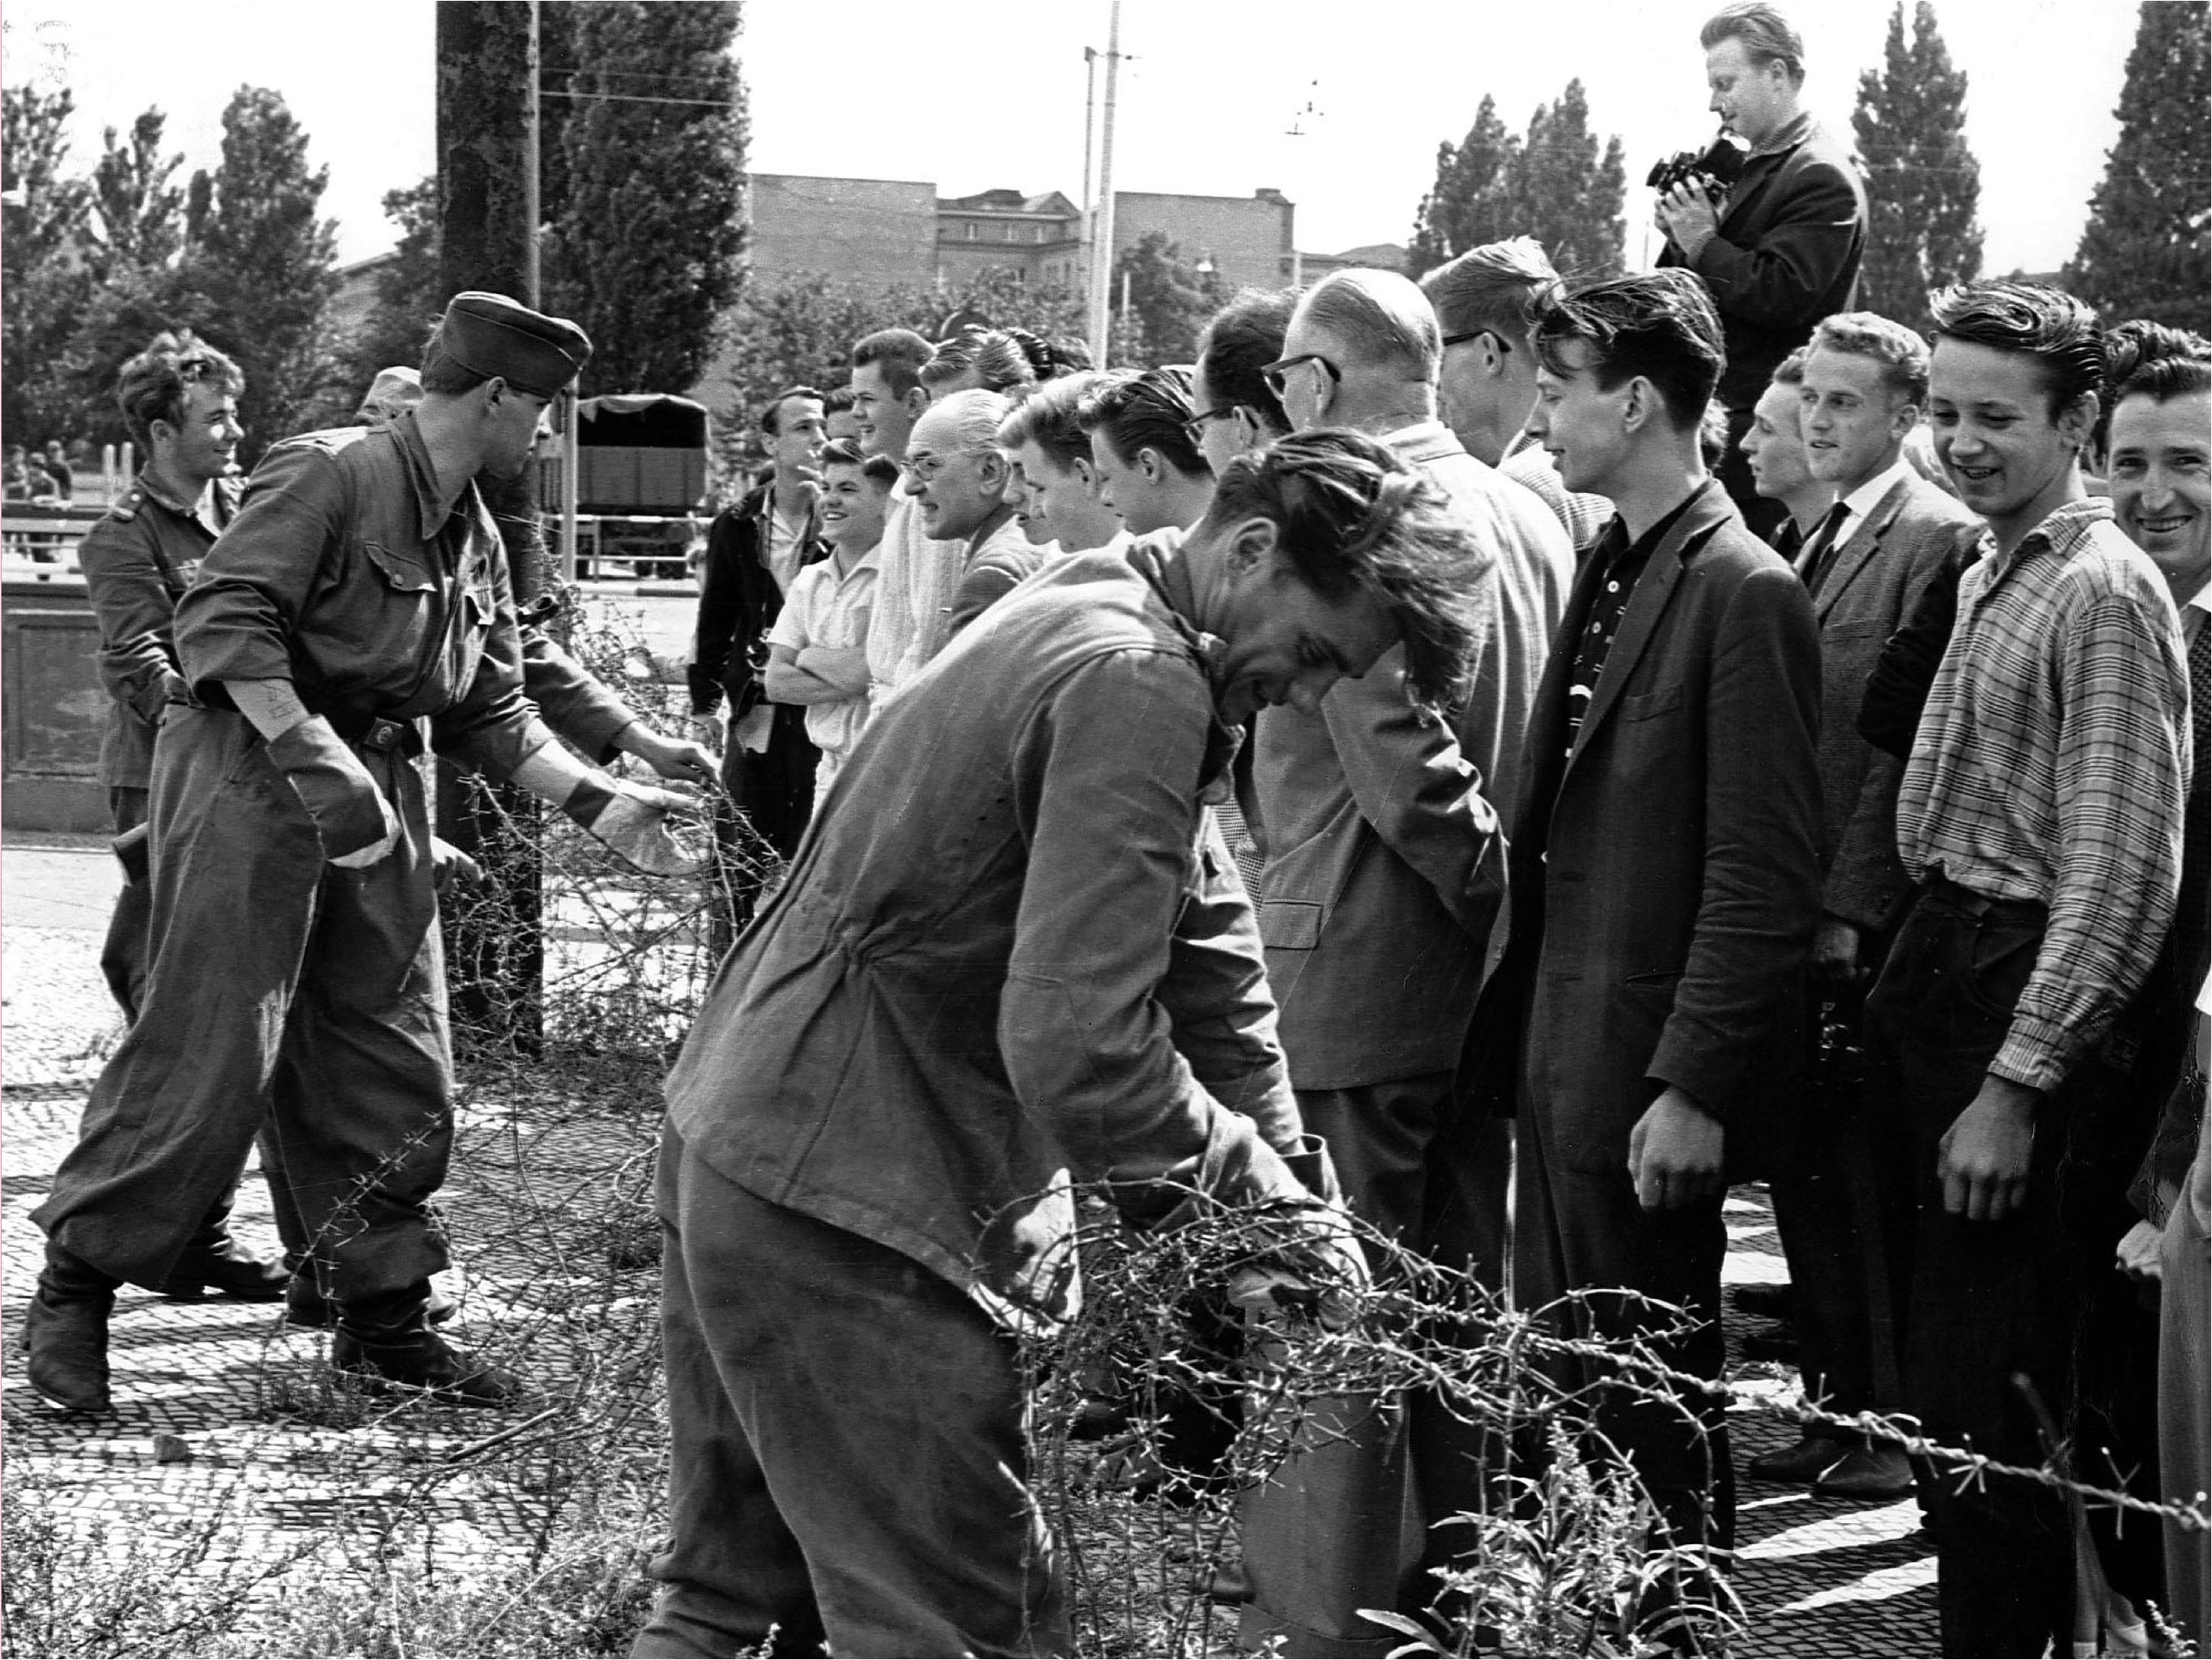 East German soldiers set up barbed wire barricades August , 13, 1961 at the border separating Berlin, Germany, to restrict the travel between the eastern and western part of the German city. West Berlin citizens watch the work.